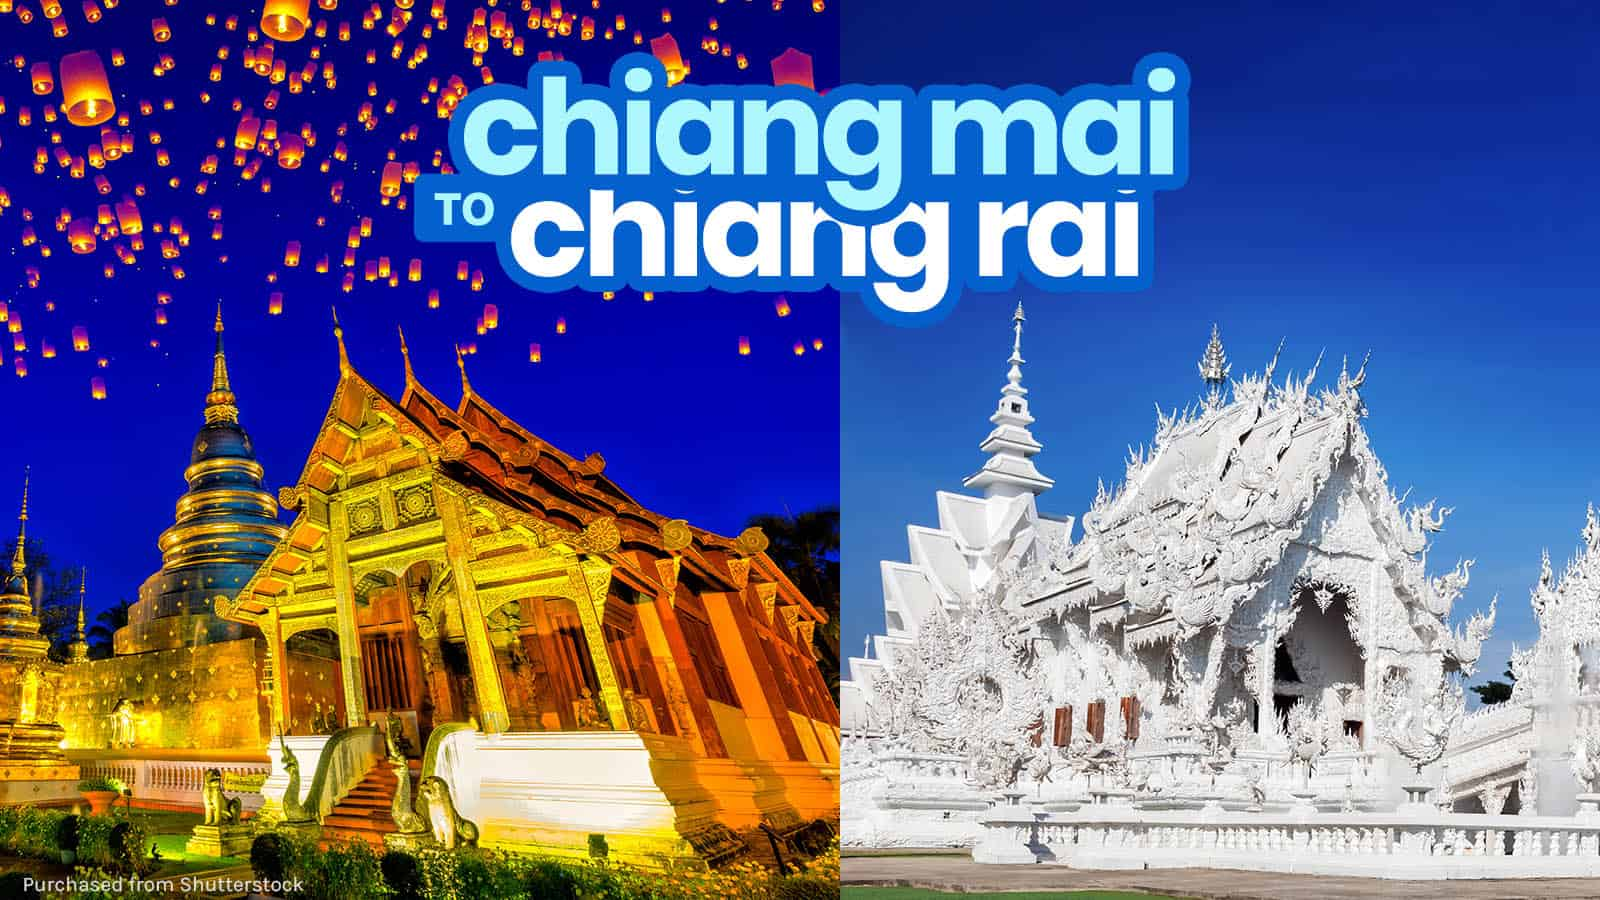 CHIANG MAI TO CHIANG RAI: By Bus, Private Transfer or Group Tour